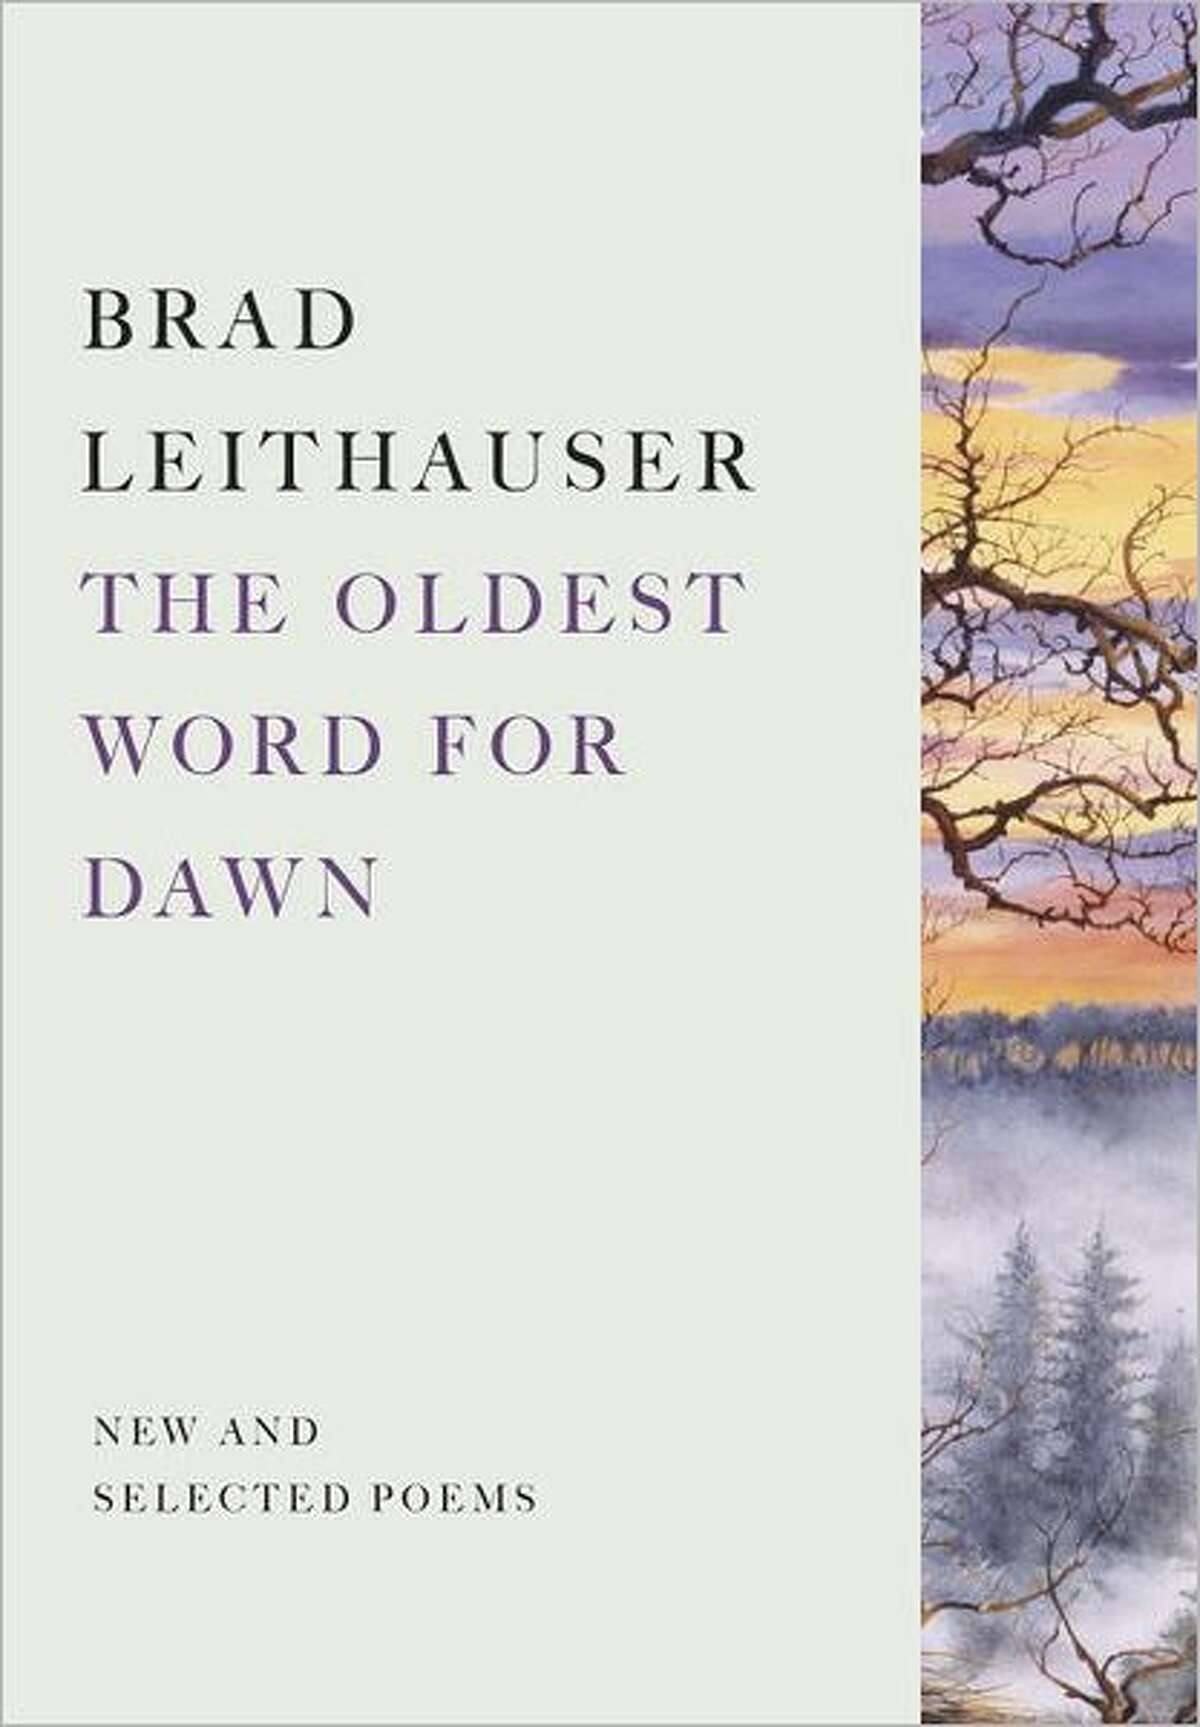 """""""The Oldest Word for Dawn: New and Selected Poems,"""" by Brad Leithauser"""